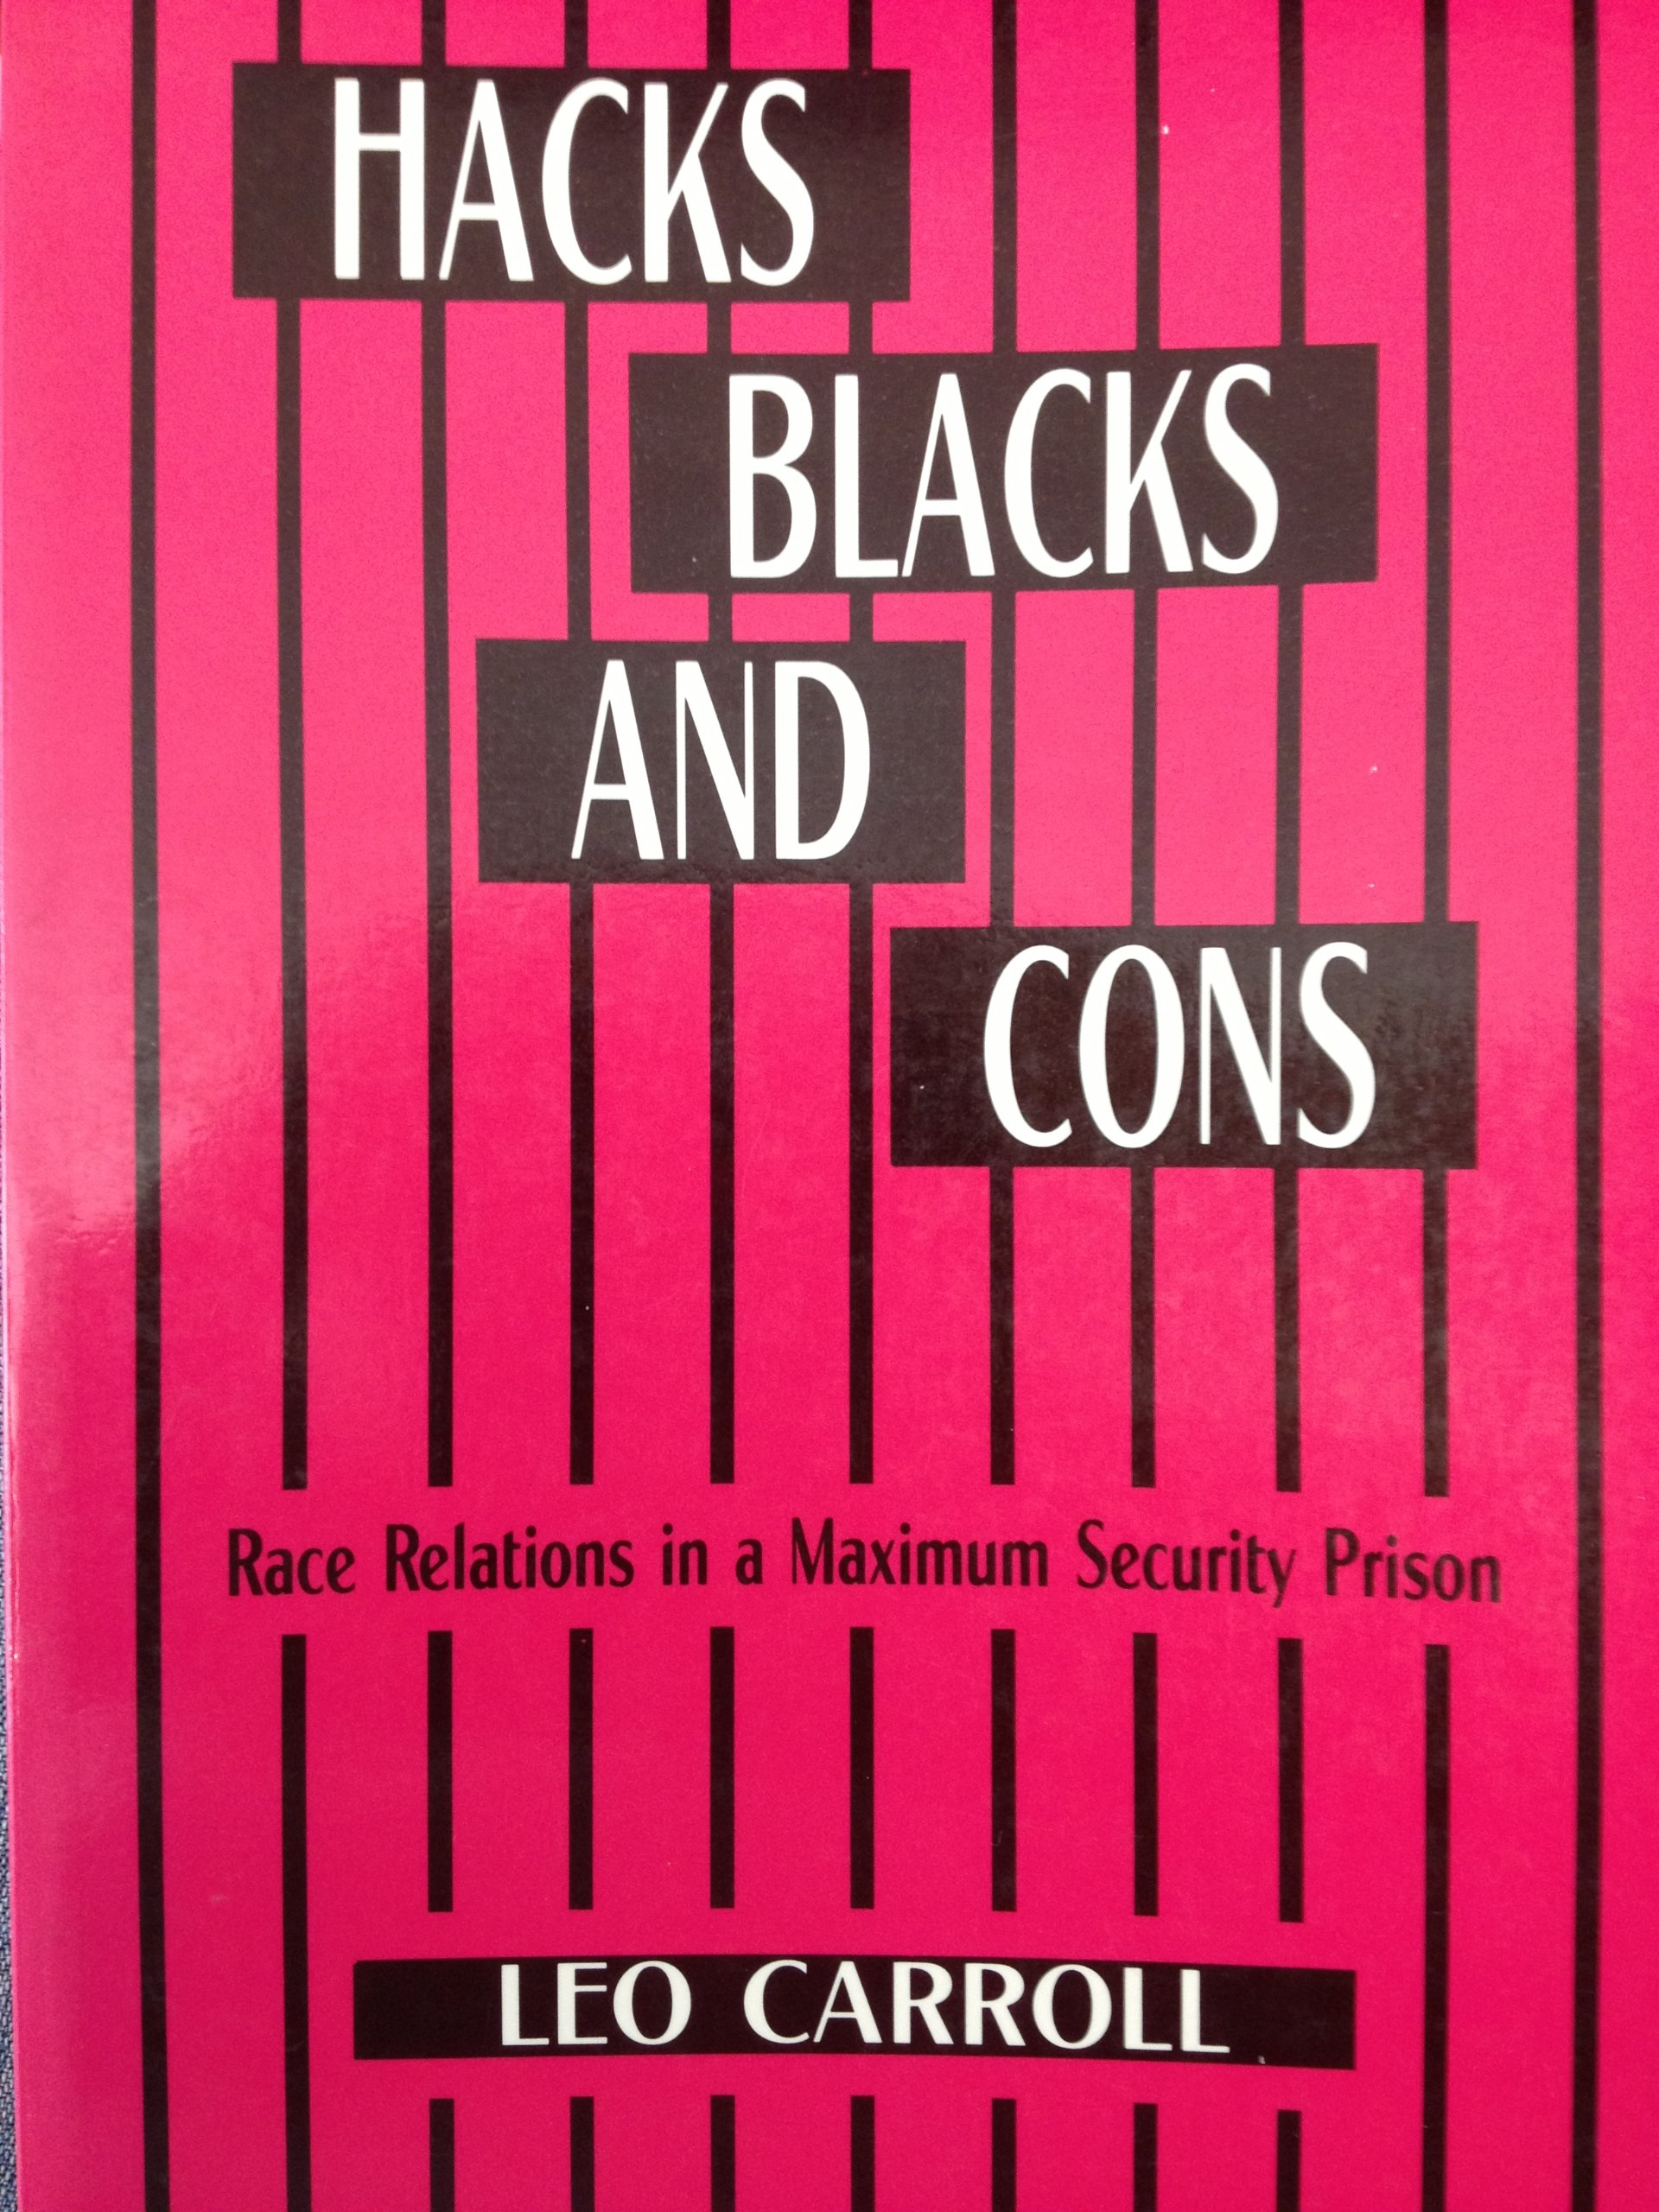 Hacks, Blacks and Cons: Race Relations in a Maximum Security Prison